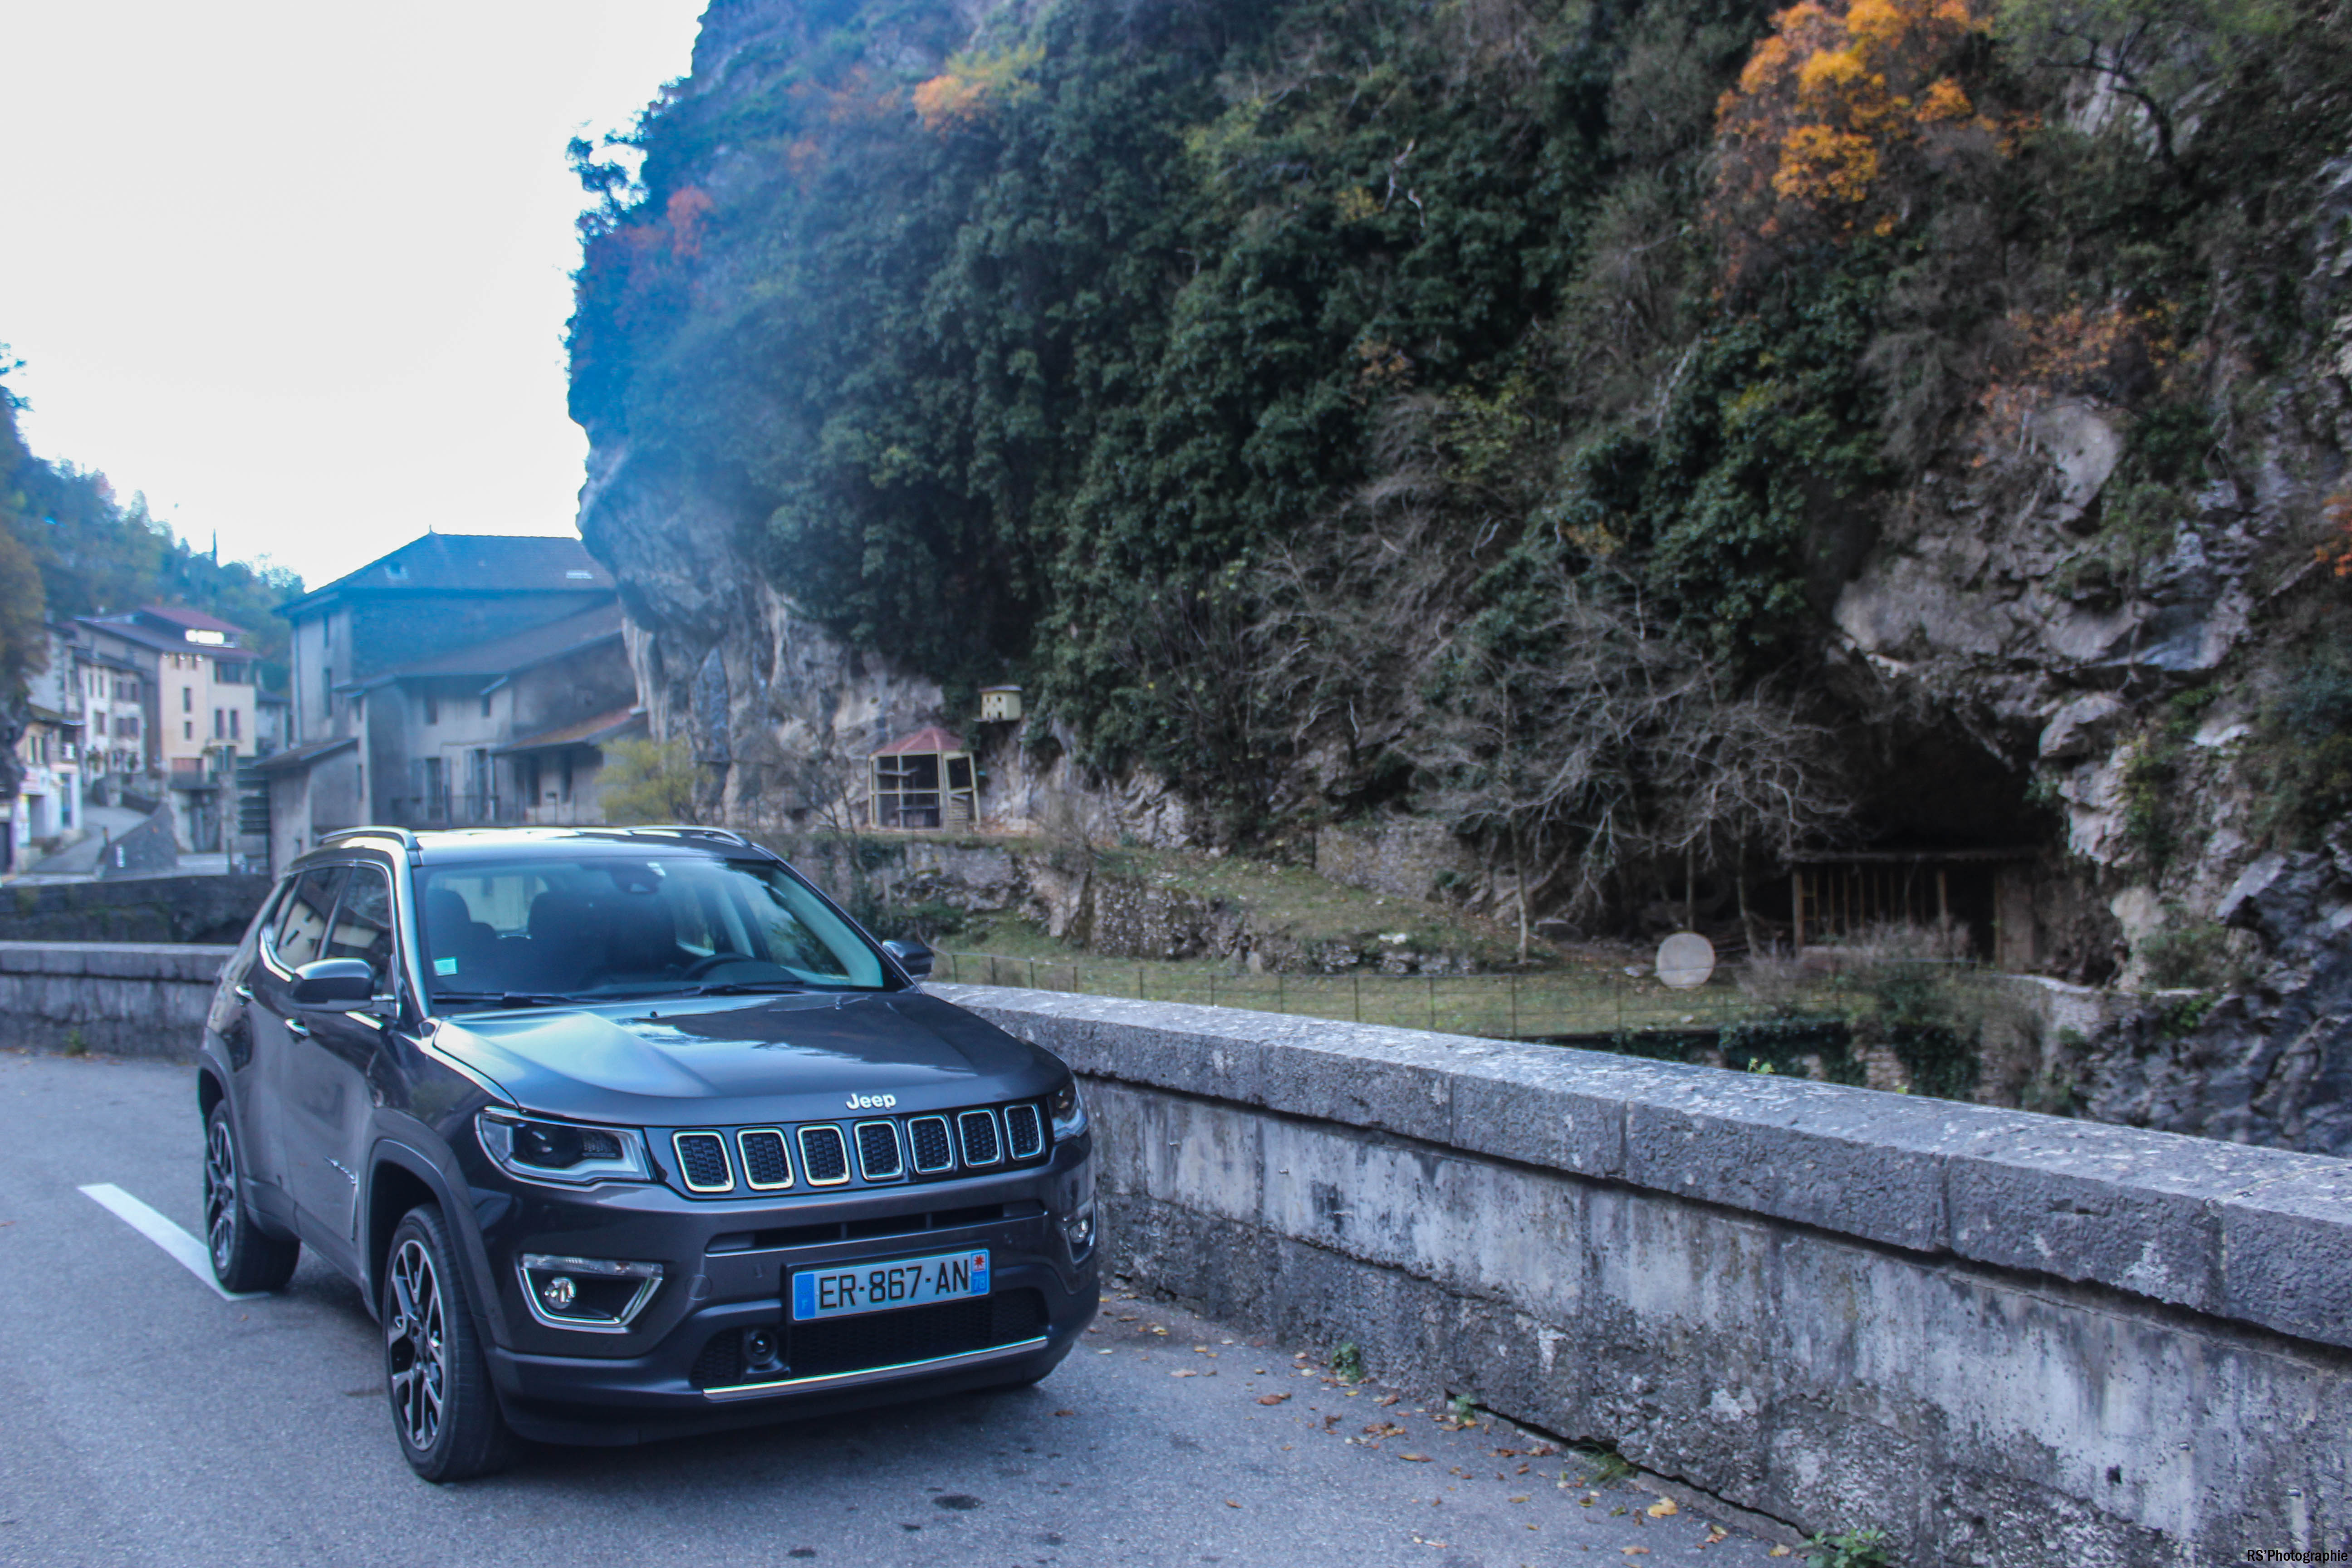 jeepcompass6-jeep-compass-avant-front-Arnaud Demasier-RSPhotographie